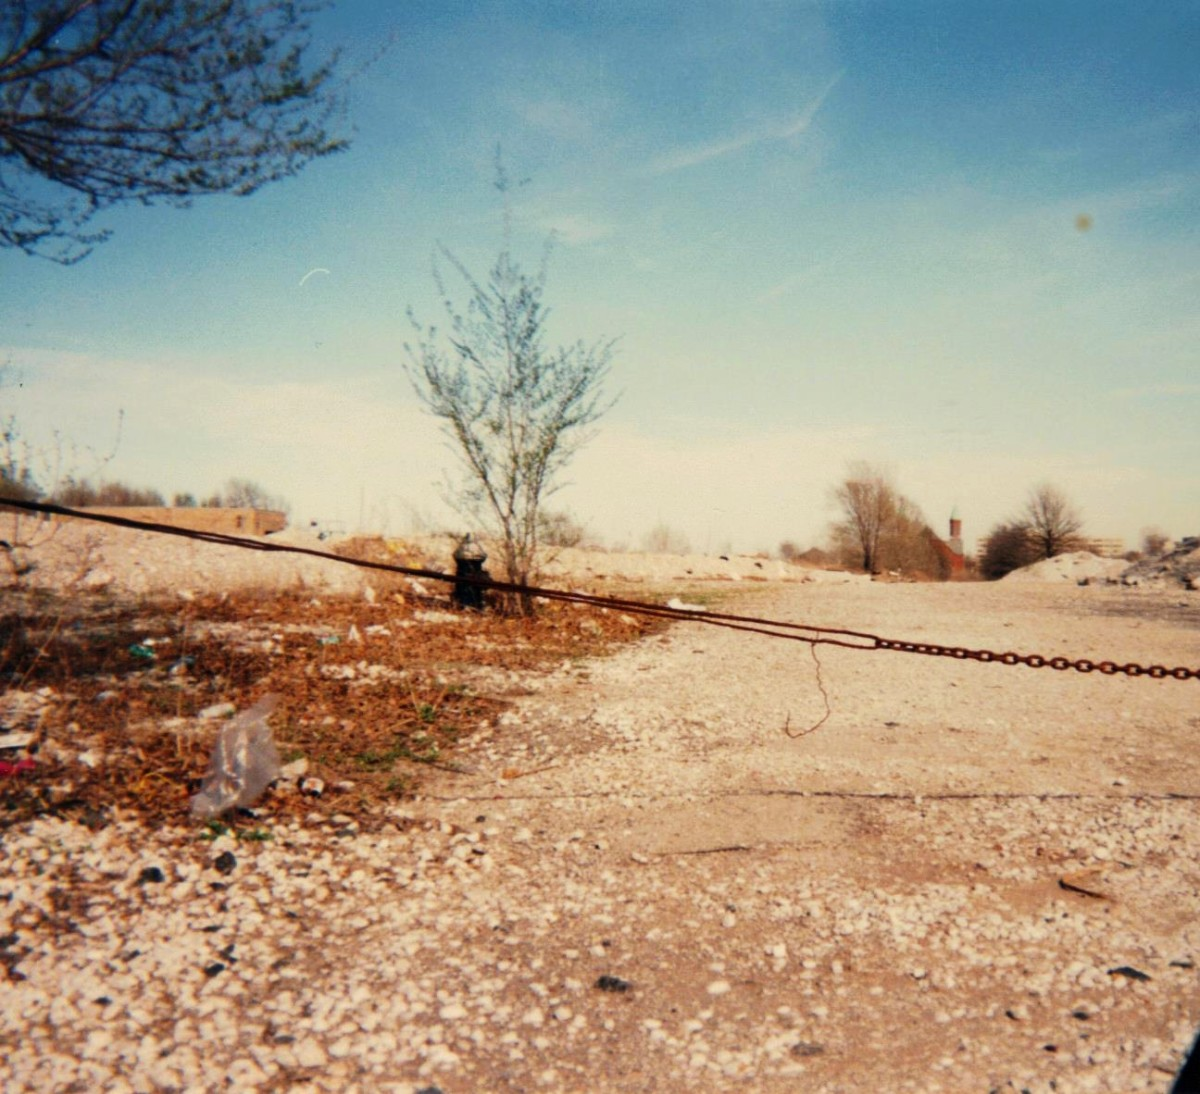 Looking east from 1301 N. Jefferson Avenue, April , 1996.  A fire hydrant still stands next to the rubble of what used to be the major street headed into the project.